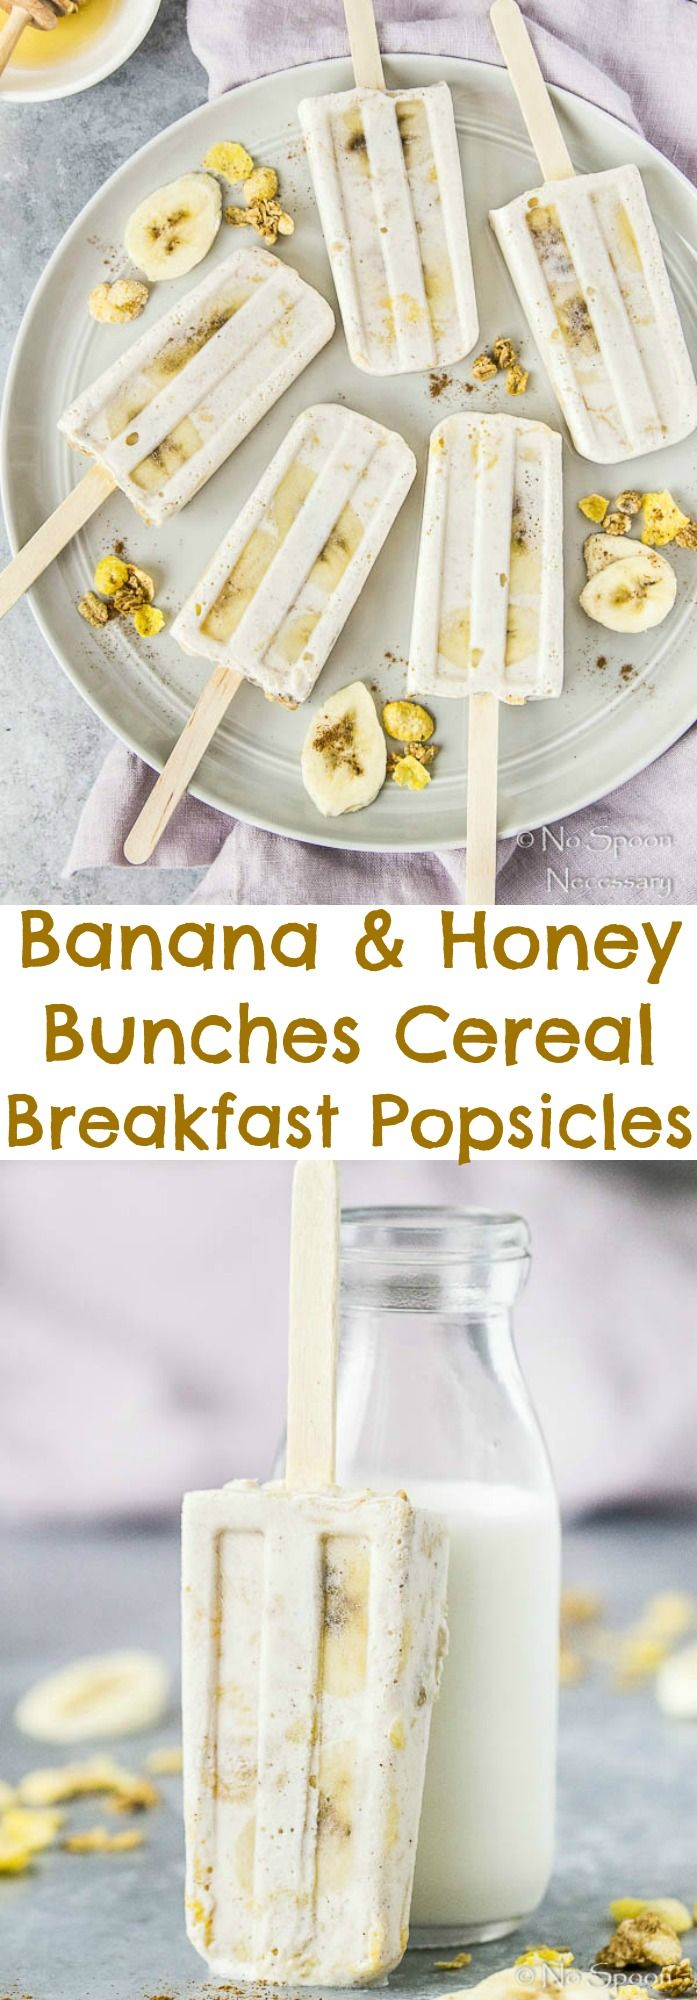 Banana & Honey Bunches Cereal Breakfast Popsicles